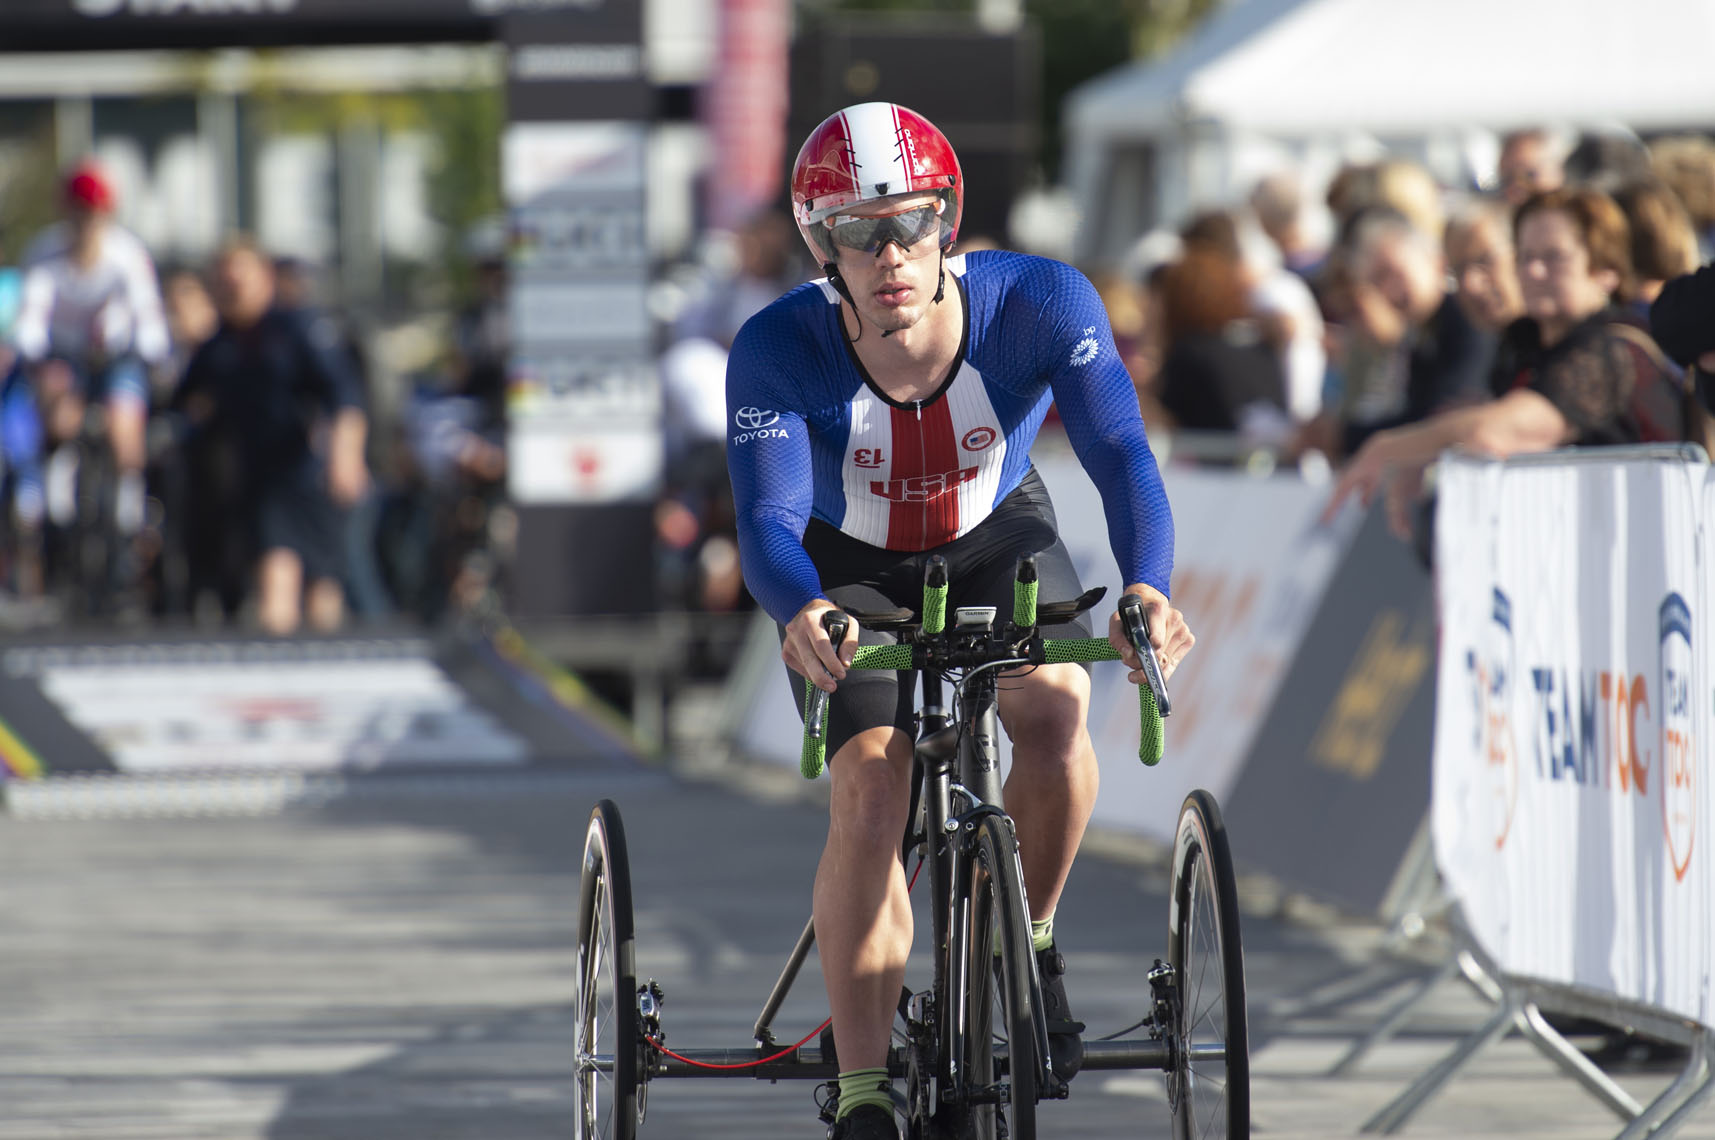 Ryan Boyle, 2019 Paracycling Road World Championships